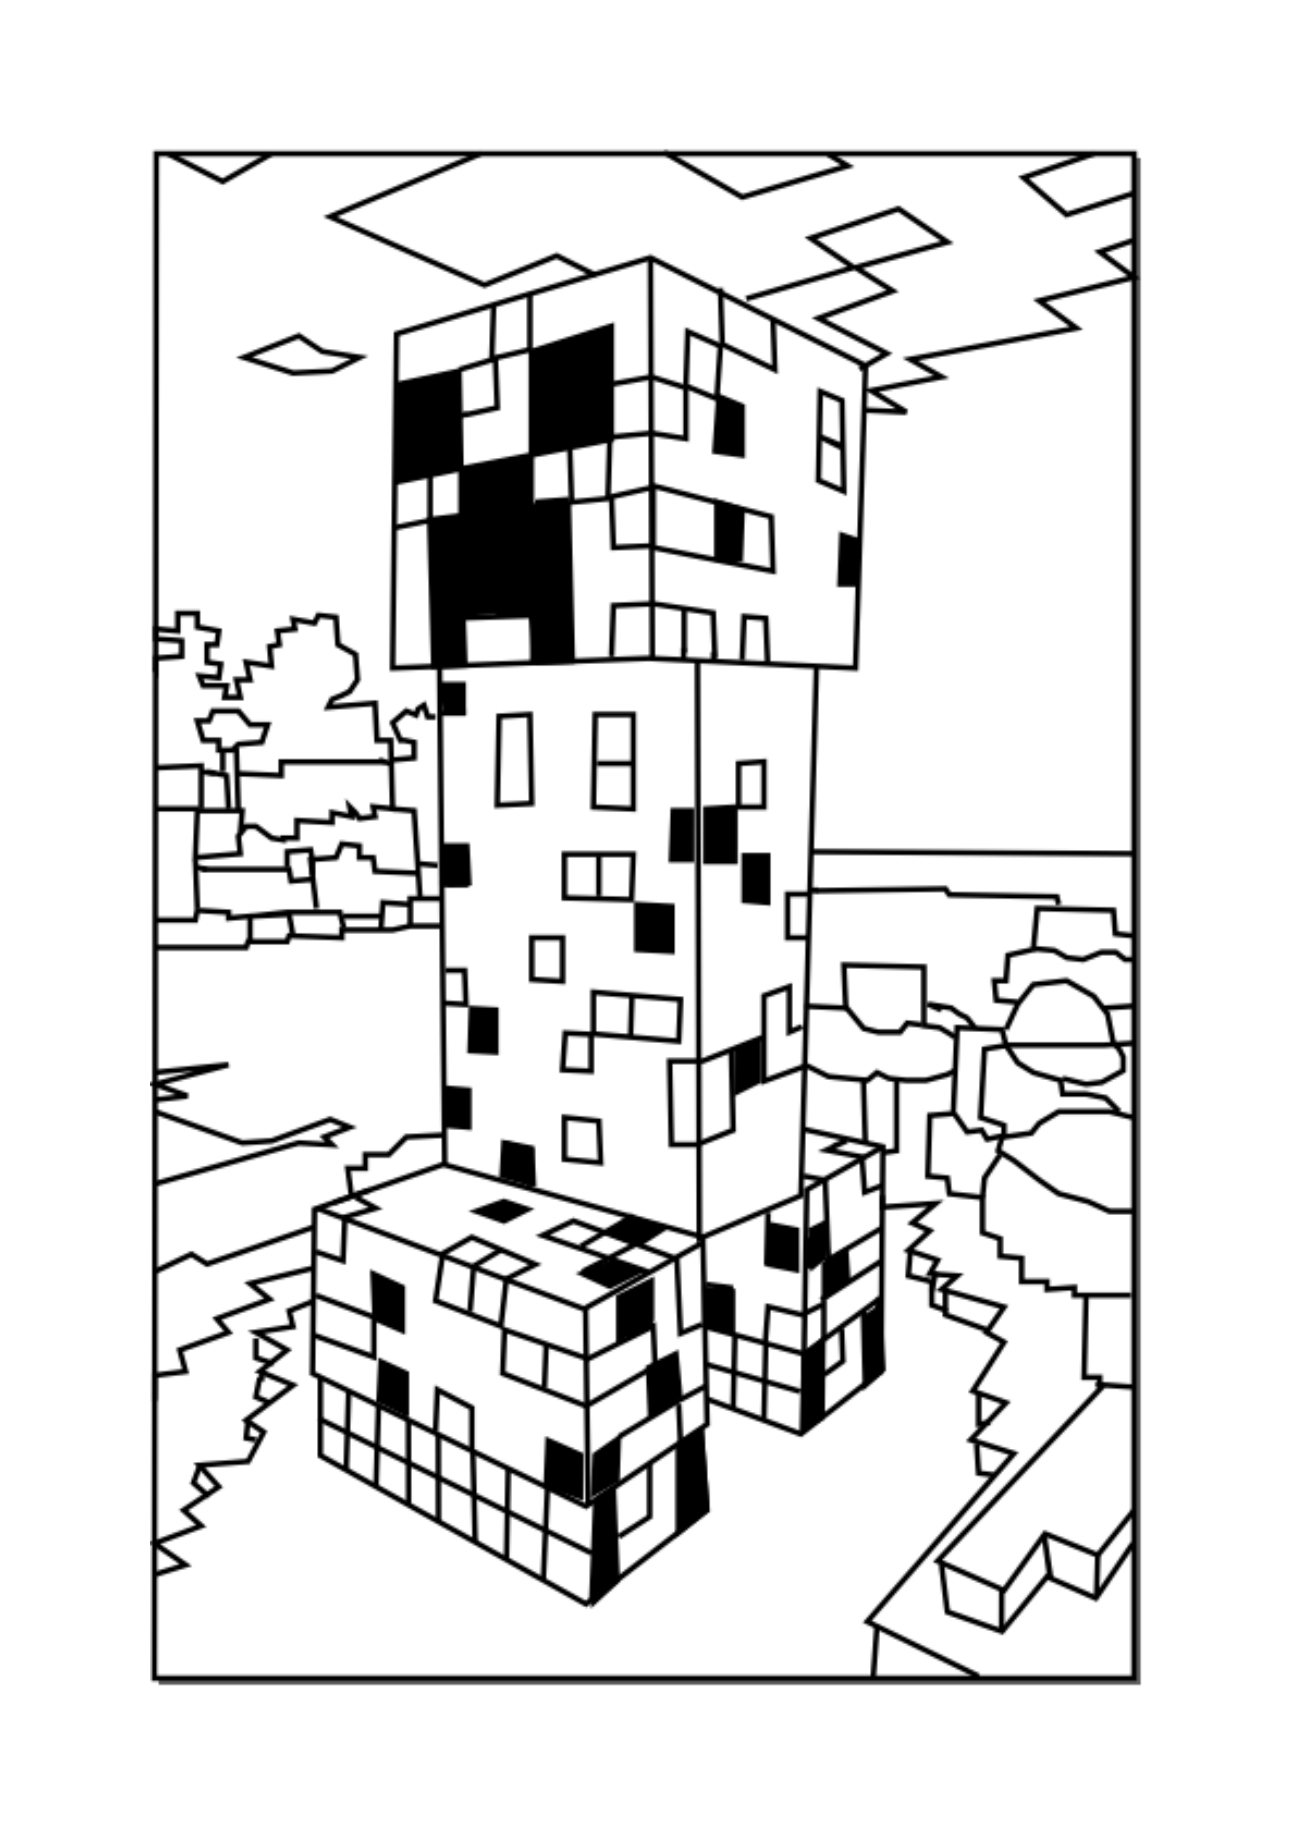 minecraft coloring sheet minecraft coloring pages best coloring pages for kids minecraft coloring sheet